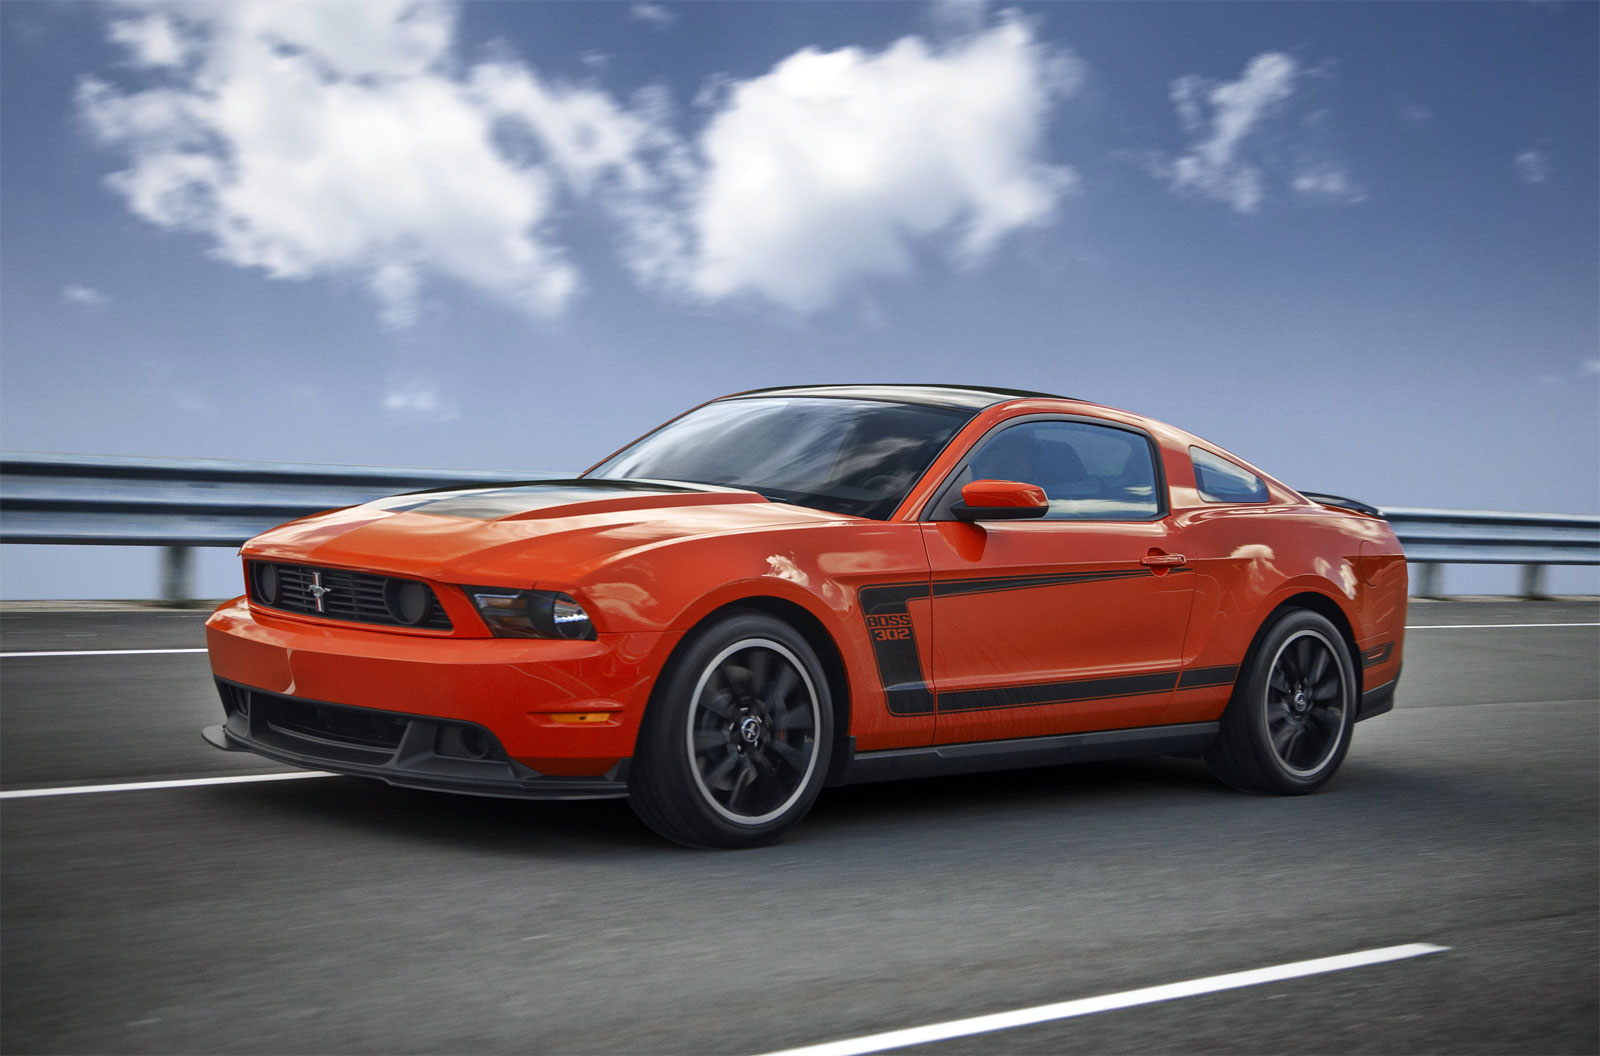 2012 ford mustang sports car automotive cars. Black Bedroom Furniture Sets. Home Design Ideas